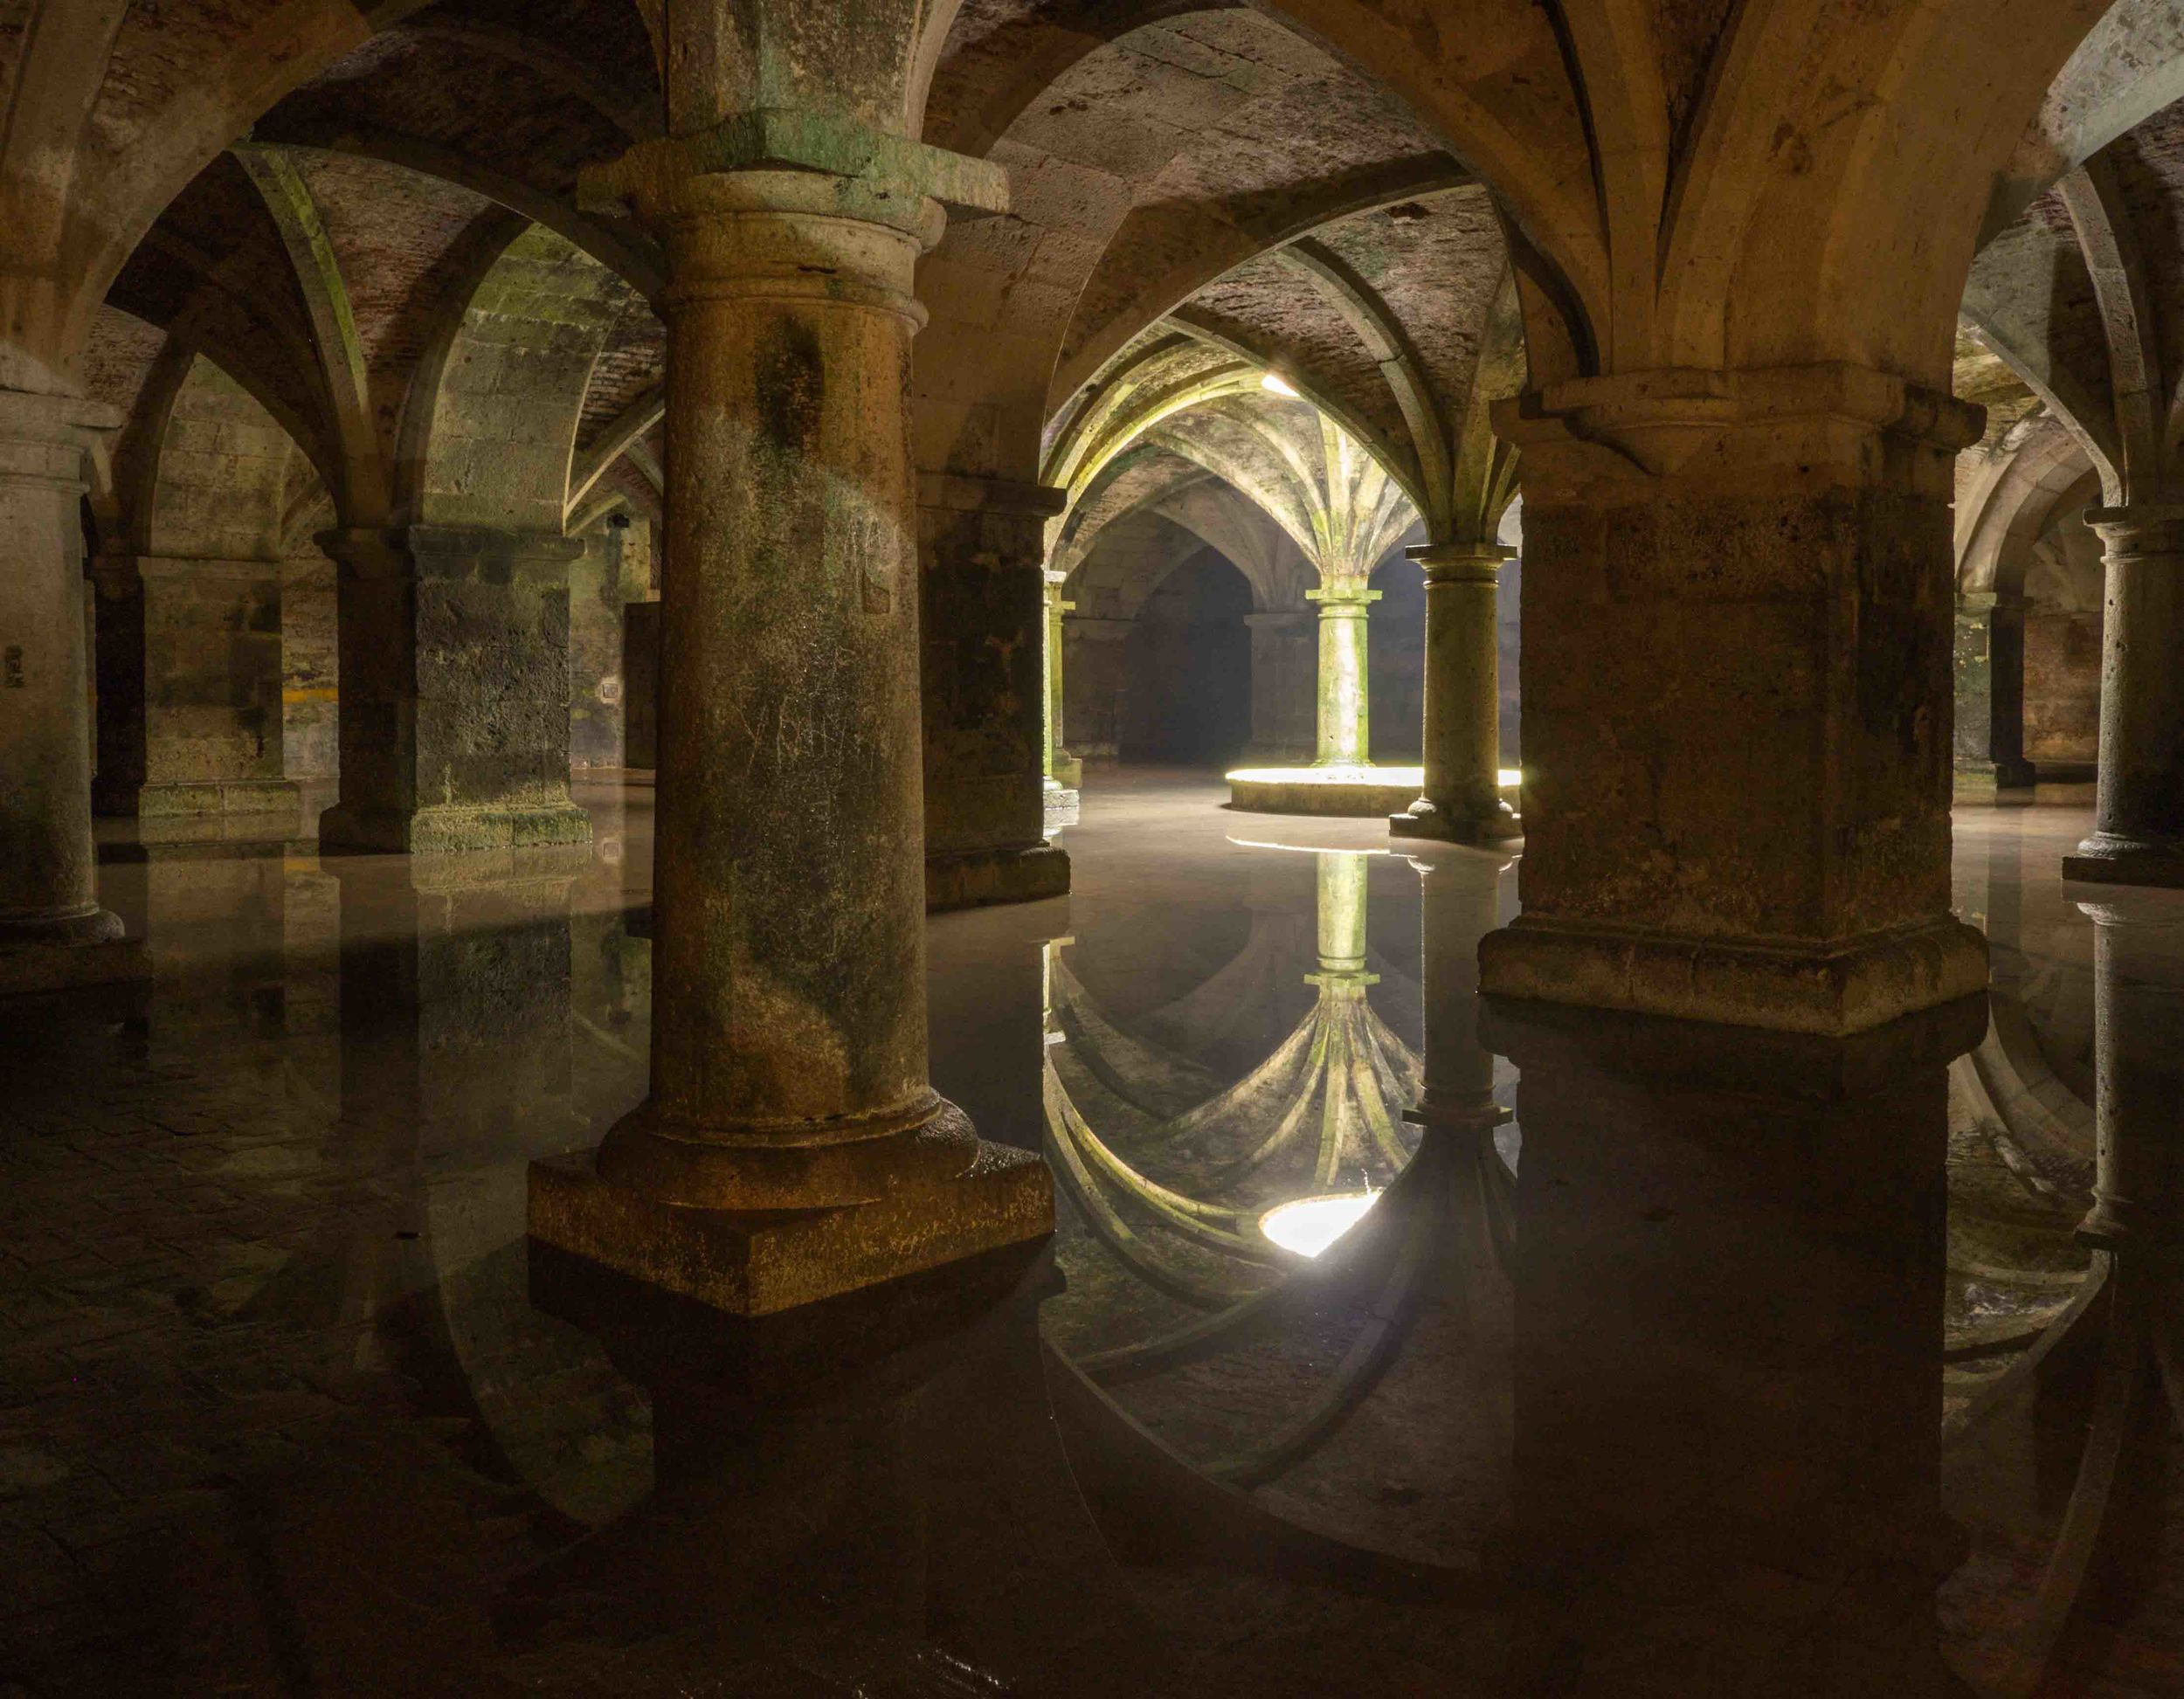 The Portuguese cistern in El Jadida